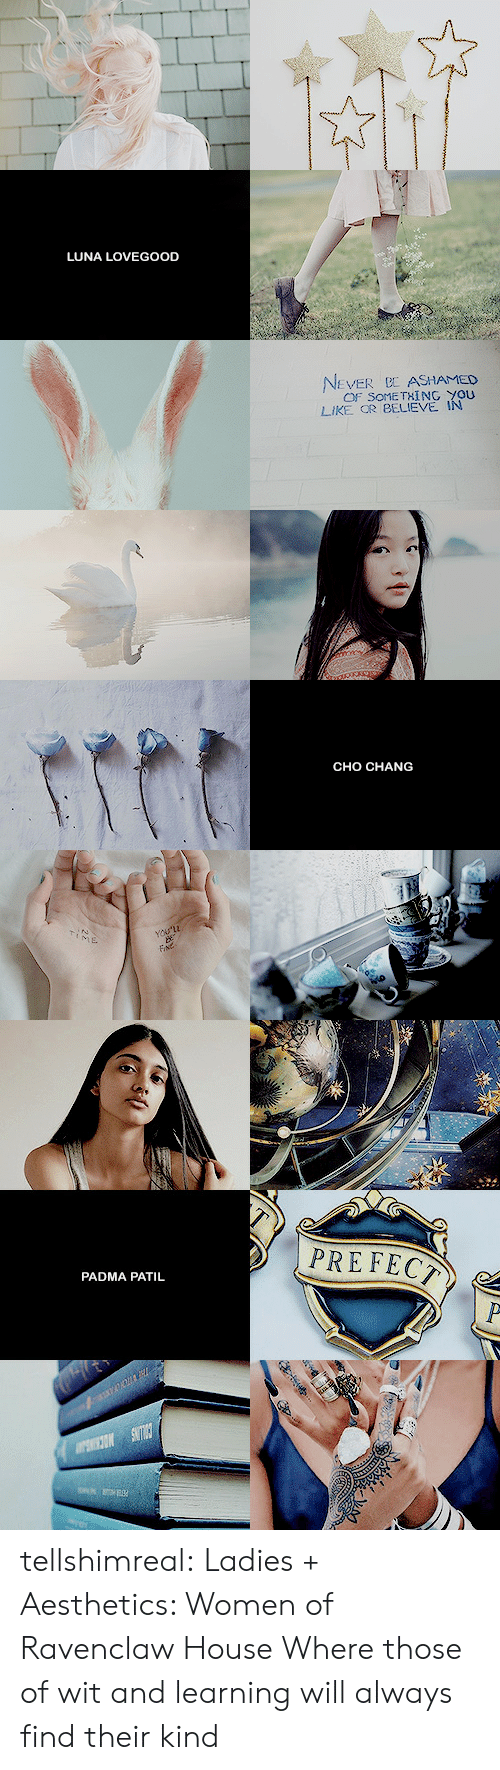 luna lovegood: LUNA LOVEGOOD  EVER ASHAMED  OF SOME TXİNG YOU  LIKE OR BELIEVE IN   CHO CHANG   PADMA PATIL tellshimreal: Ladies + Aesthetics: Women of Ravenclaw House Where those of wit and learning will always find their kind